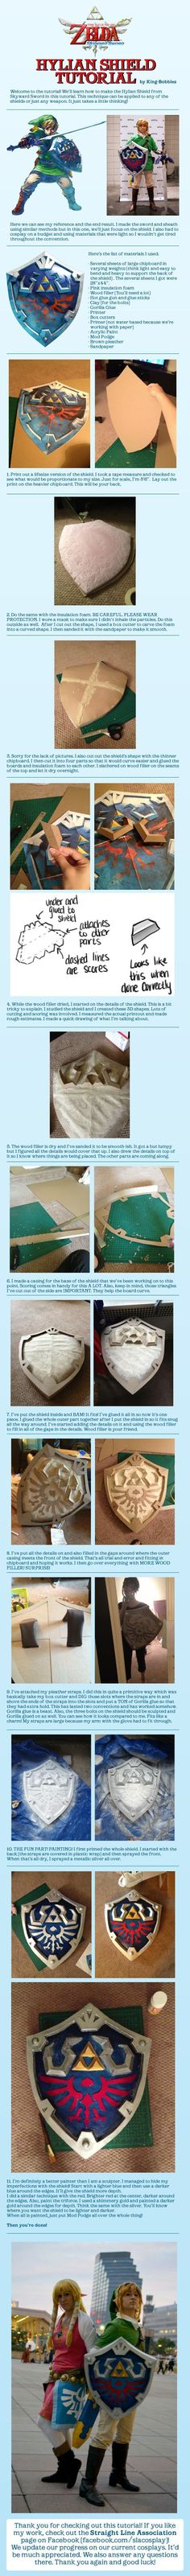 The Legend of Zelda Hylian Shield Cosplay Tutorial by King-Bobbles - Worth keeping handy. Link Cosplay, Cosplay Diy, Halloween Cosplay, Halloween Costumes, Cosplay Weapons, Cosplay Armor, Photos Booth, The Legend Of Zelda, Legend Of Zelda Costume